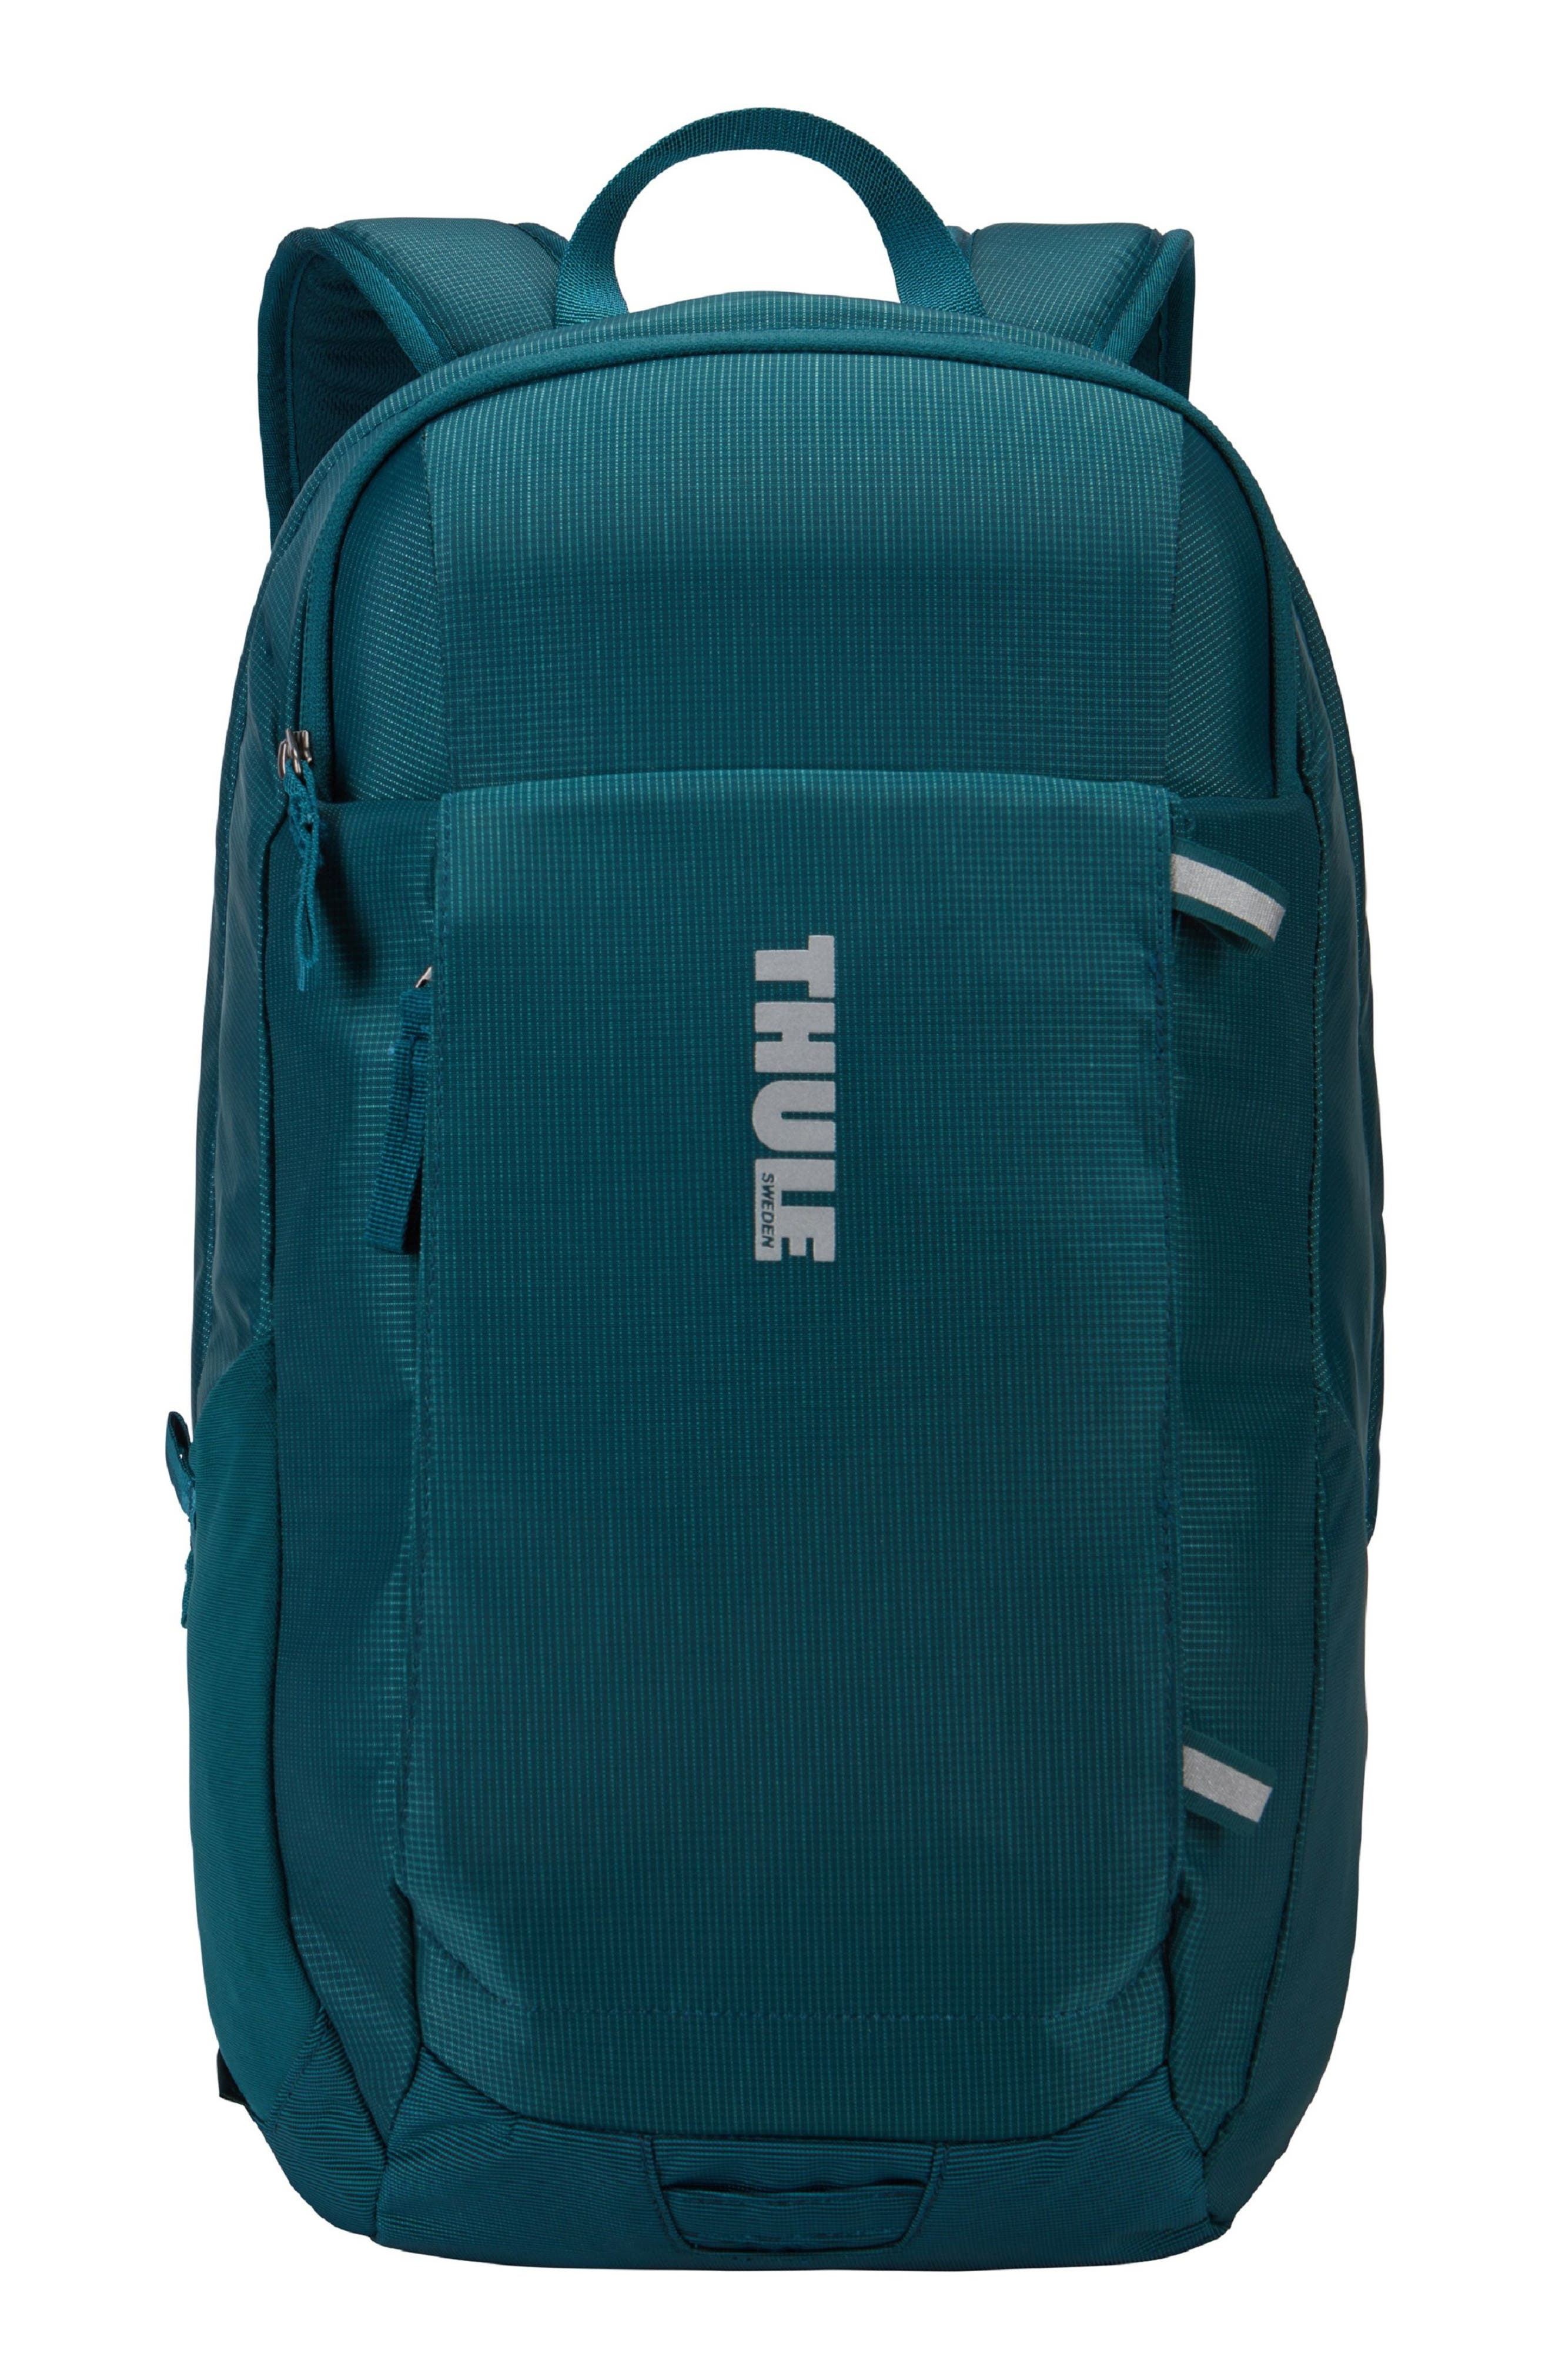 Thule Enroute Backpack - Blue